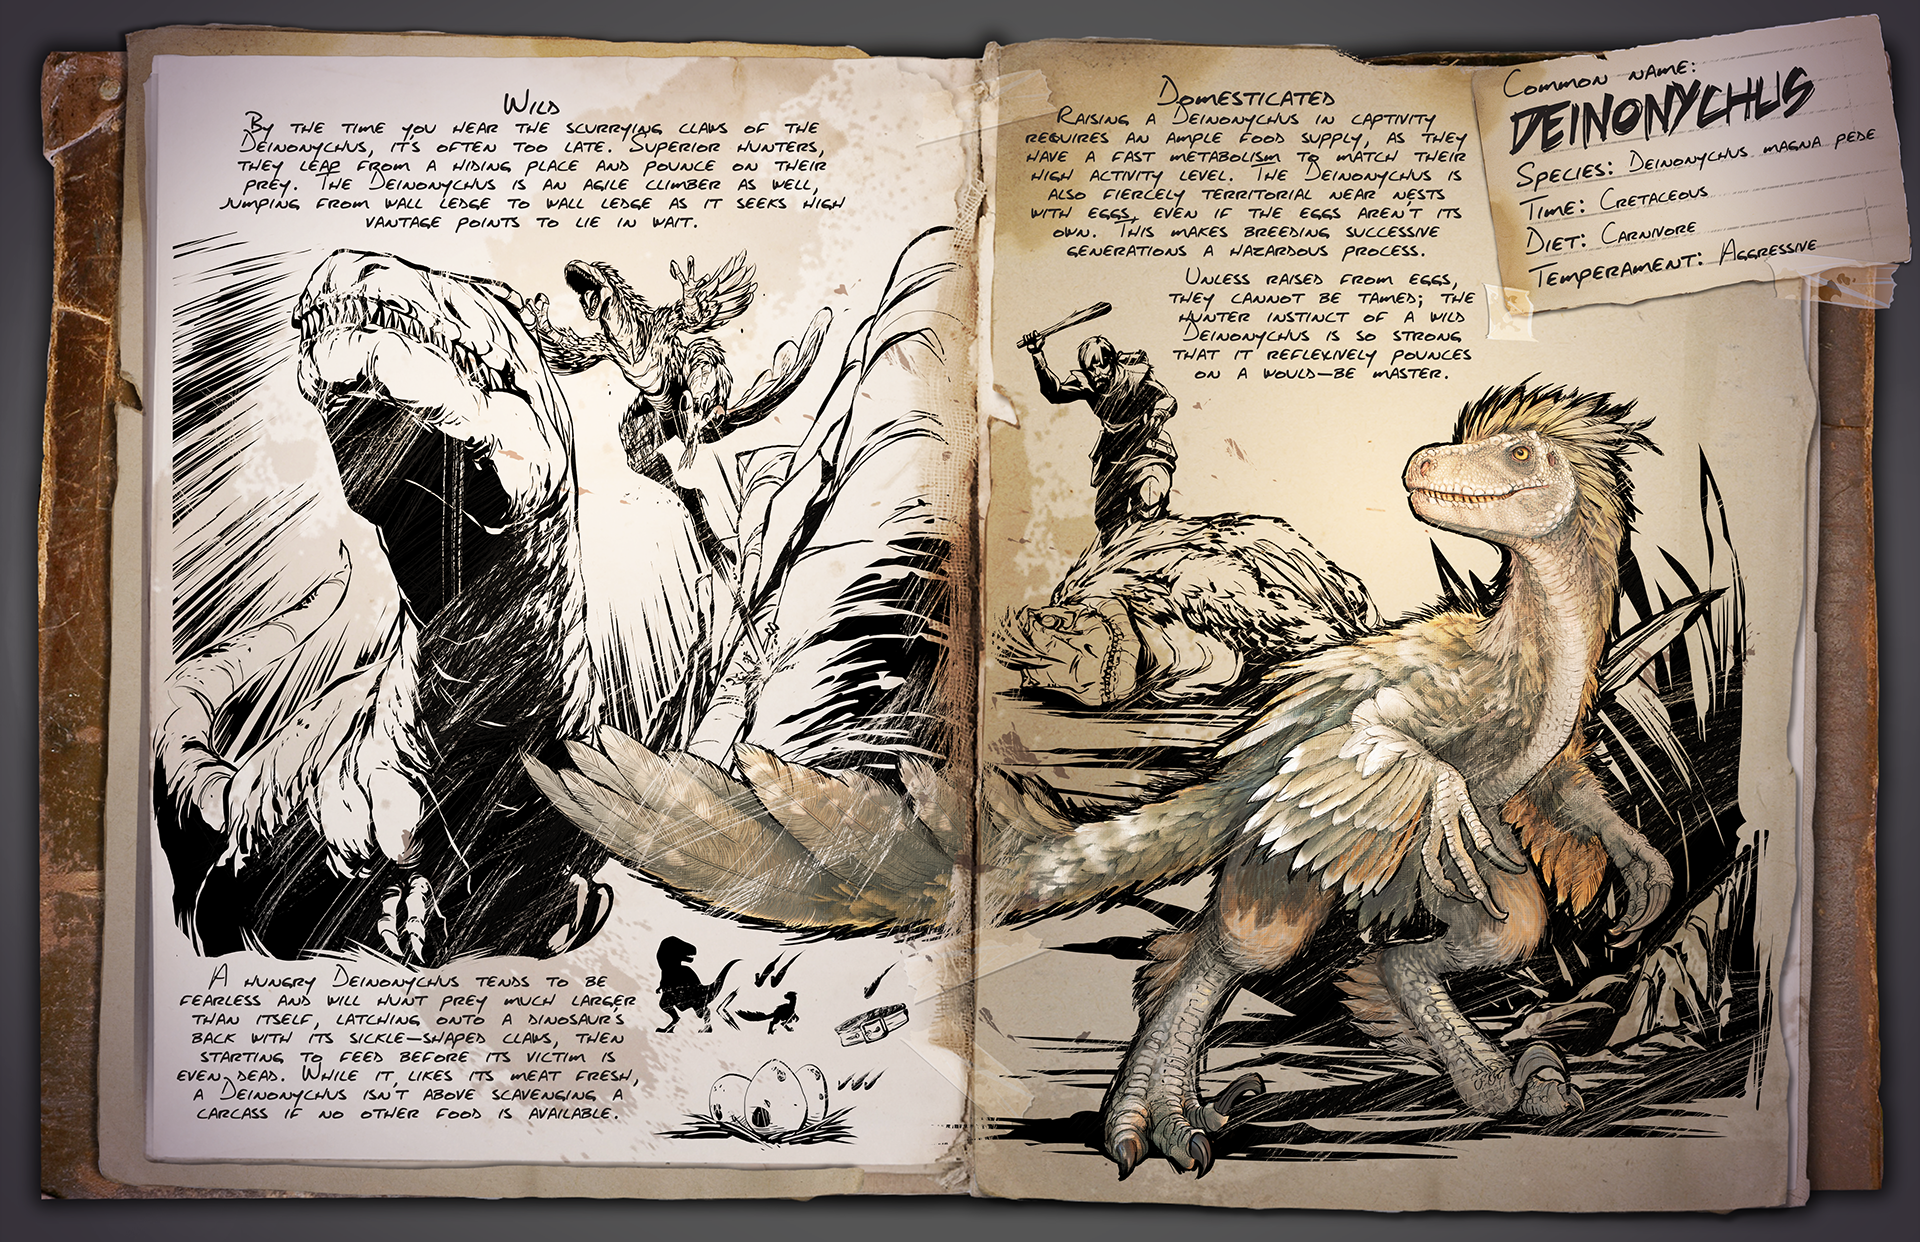 ARK: Survival Evolved - #1 Source for Tips, Tricks and